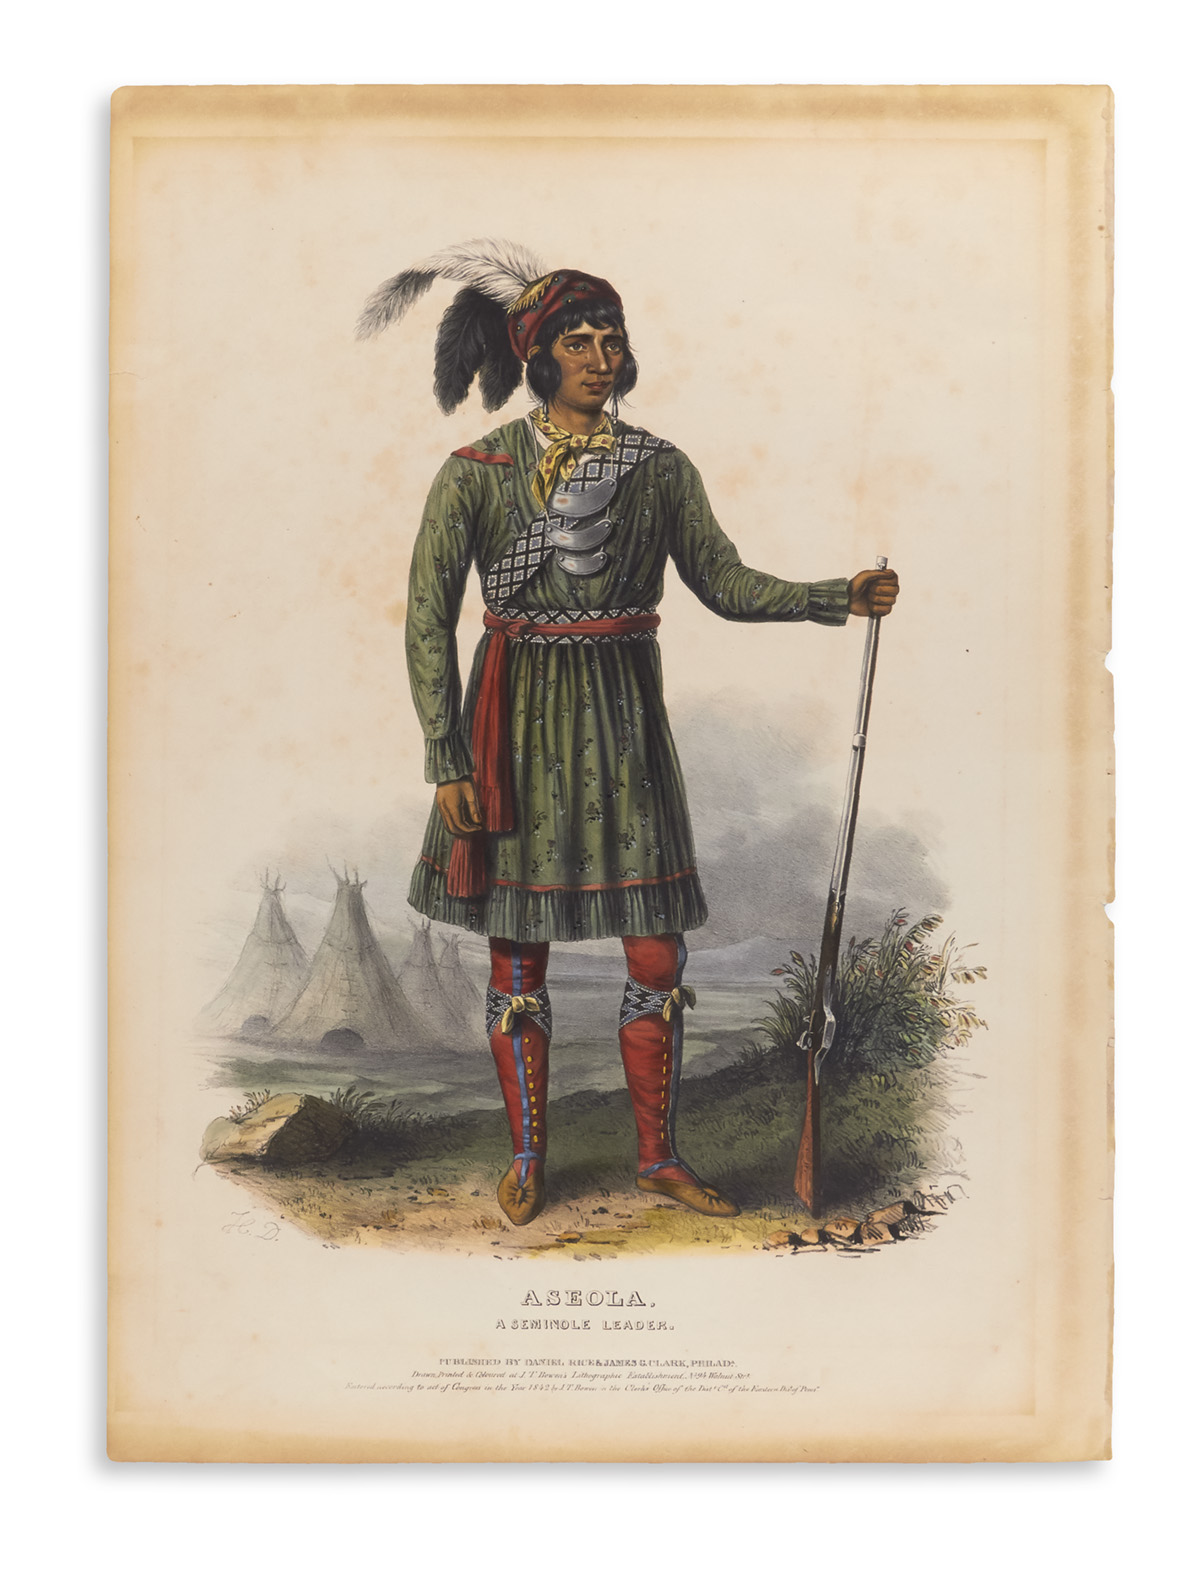 (NATIVE AMERICANS.) McKenney, Thomas; and Hall, James. Aseola, A Seminole Leader.